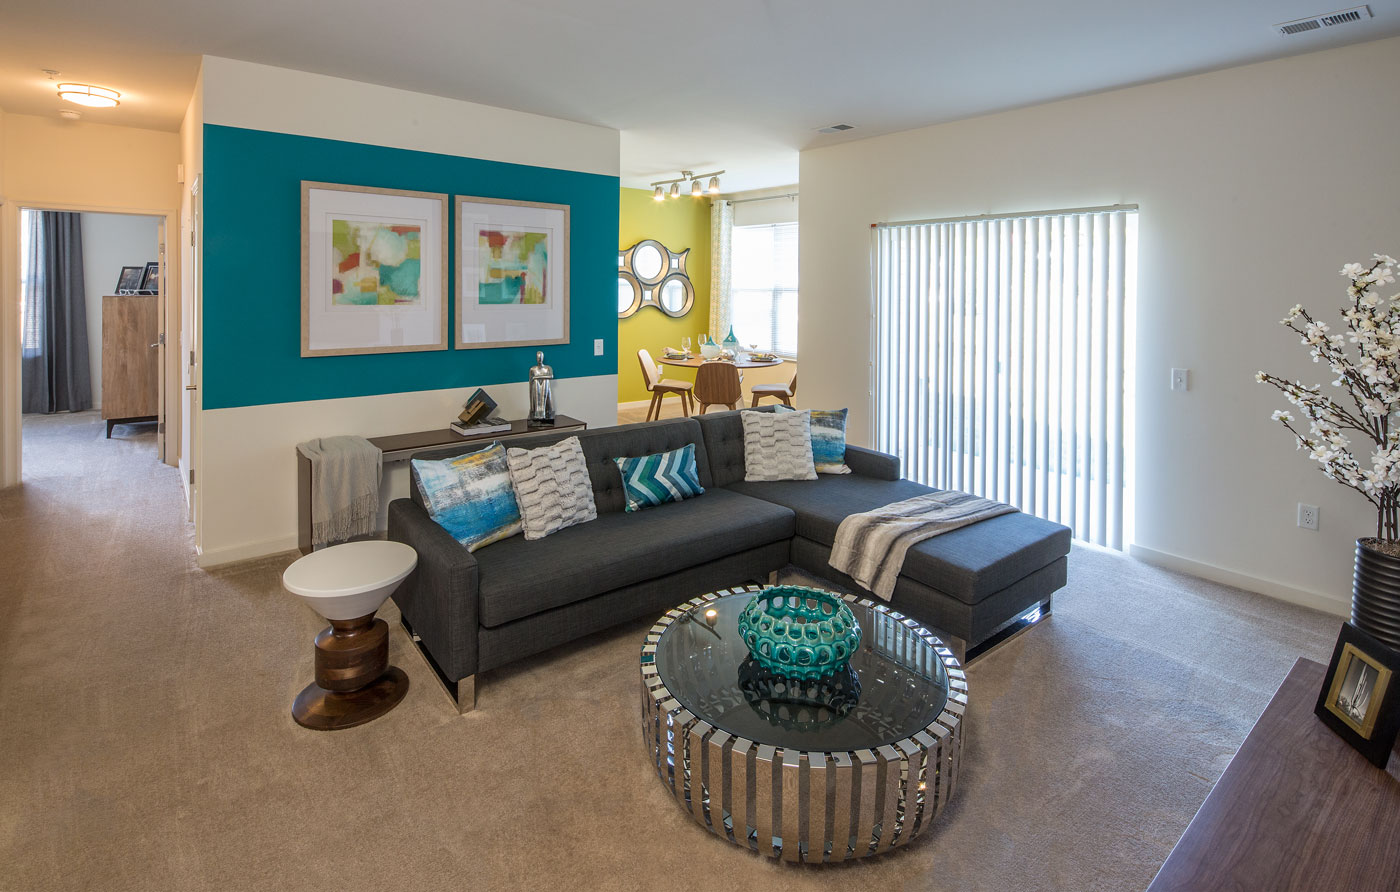 living area with sectional sofa, coffee table, end tables, modern artwork and view of dining area - christiana mall luxury apartments